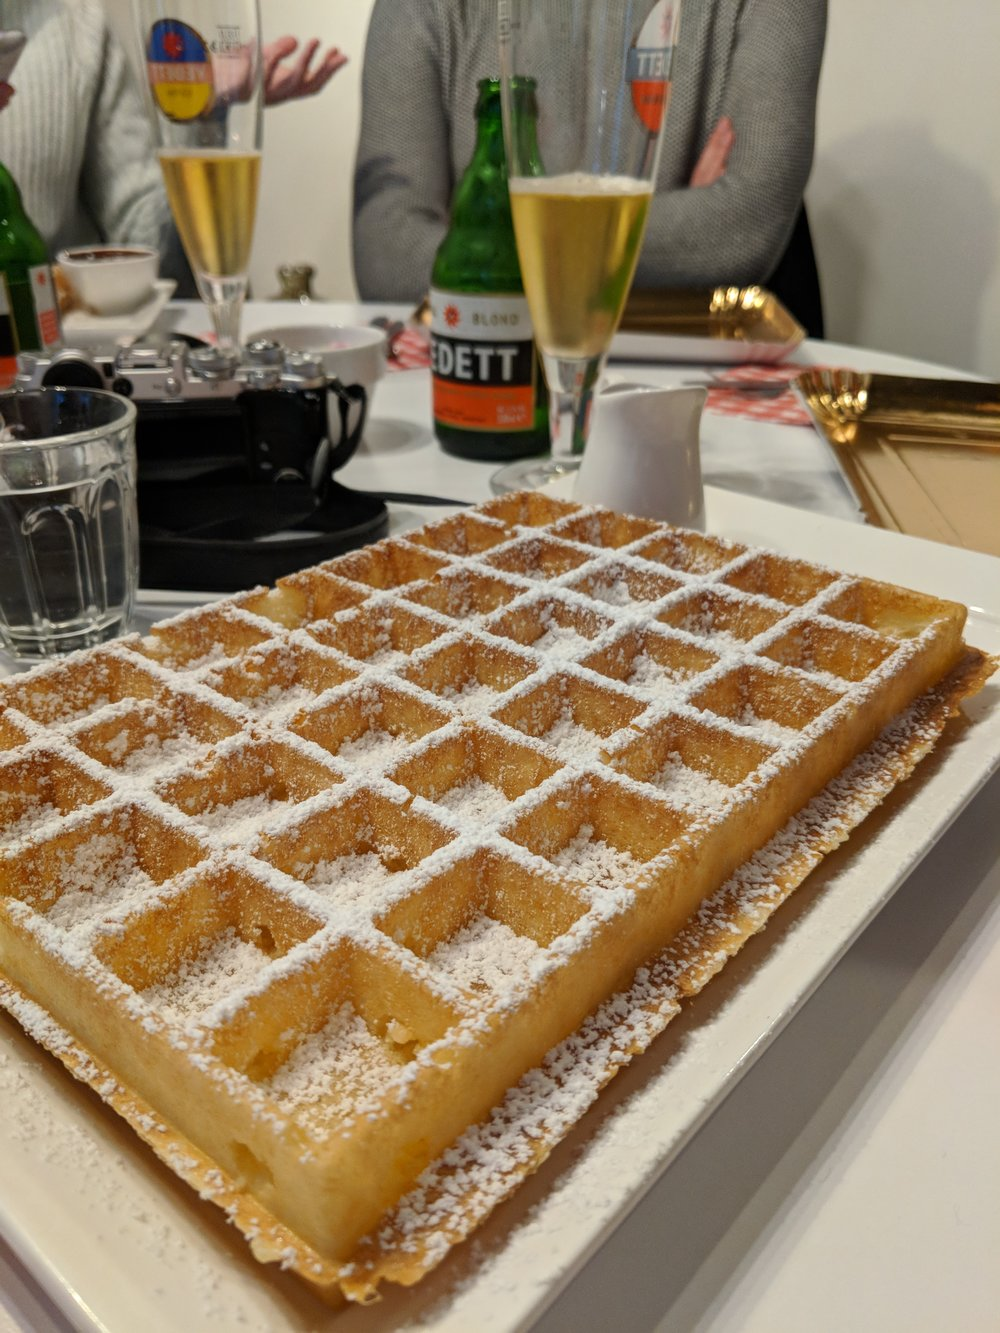 Lizzie's Waffles - Whatever you do make sure you add a trip to lizzies waffles to your todo list for Bruges. One between two is plenty they are HUGE trust me. By far the best waffles i've ever eaten.